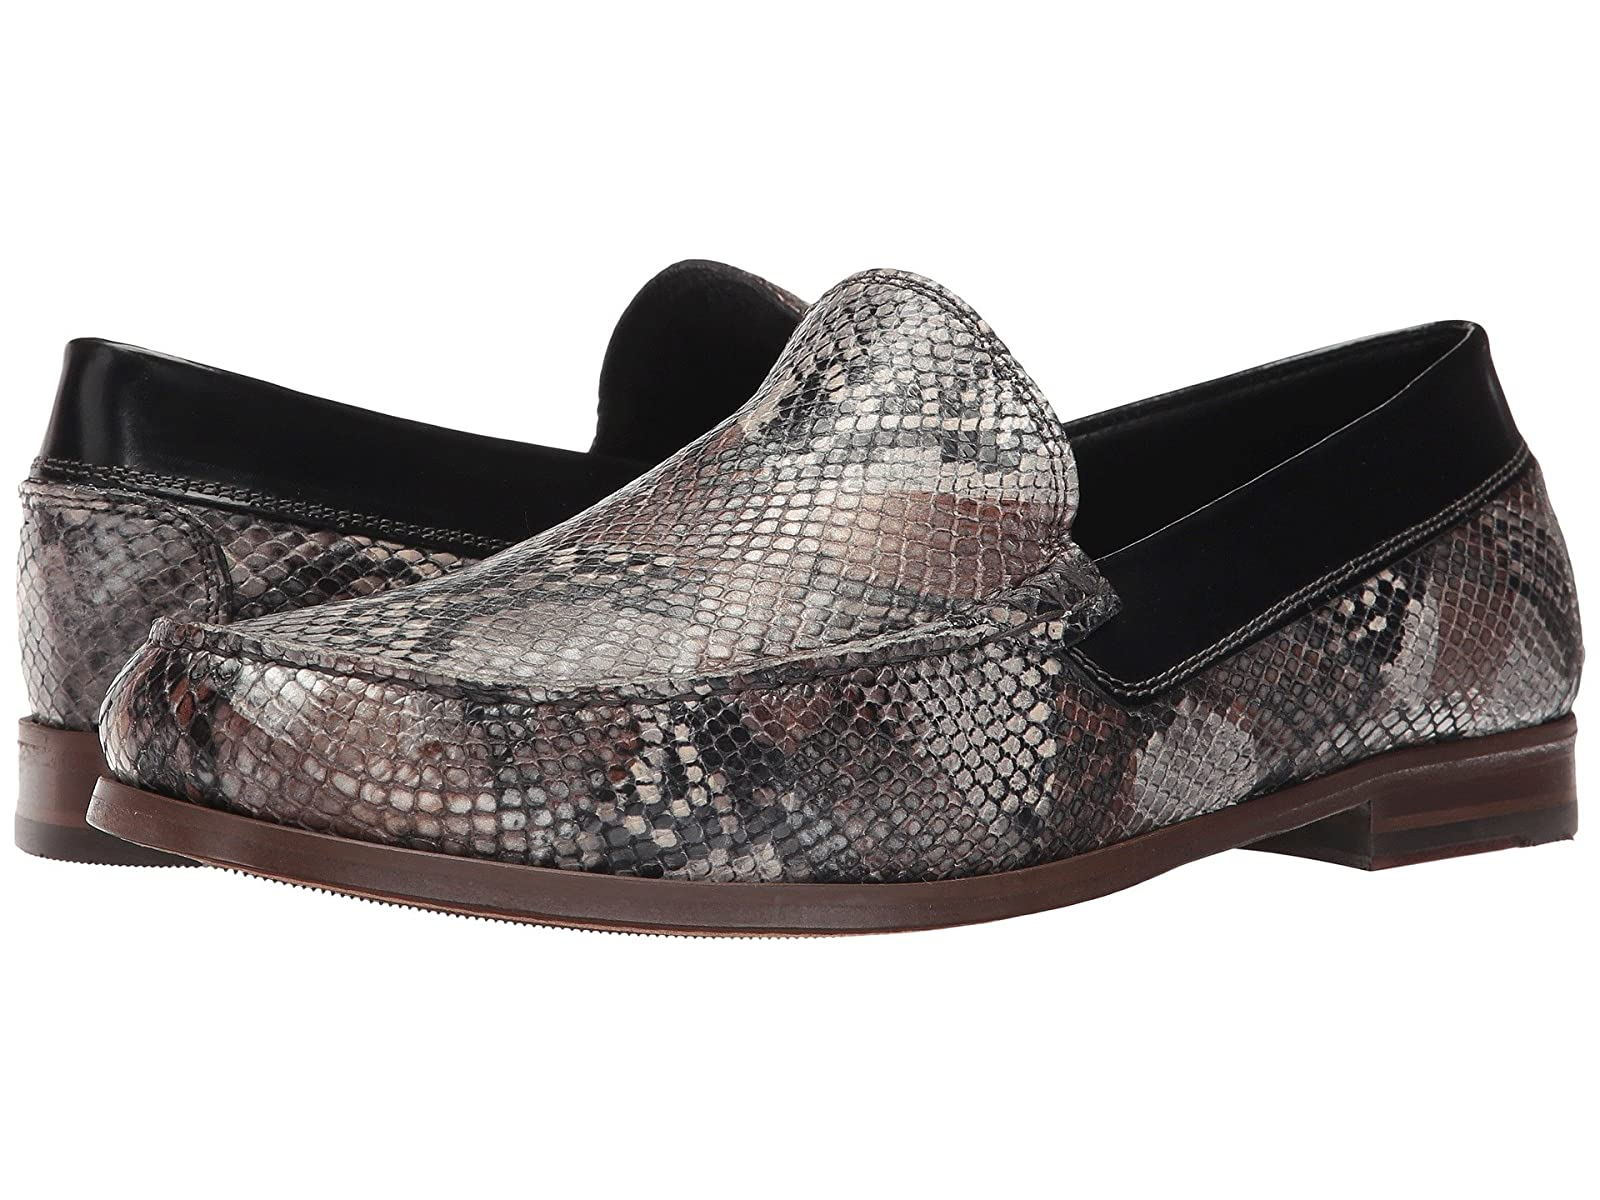 Donald J Pliner NateCheap and distinctive eye-catching shoes